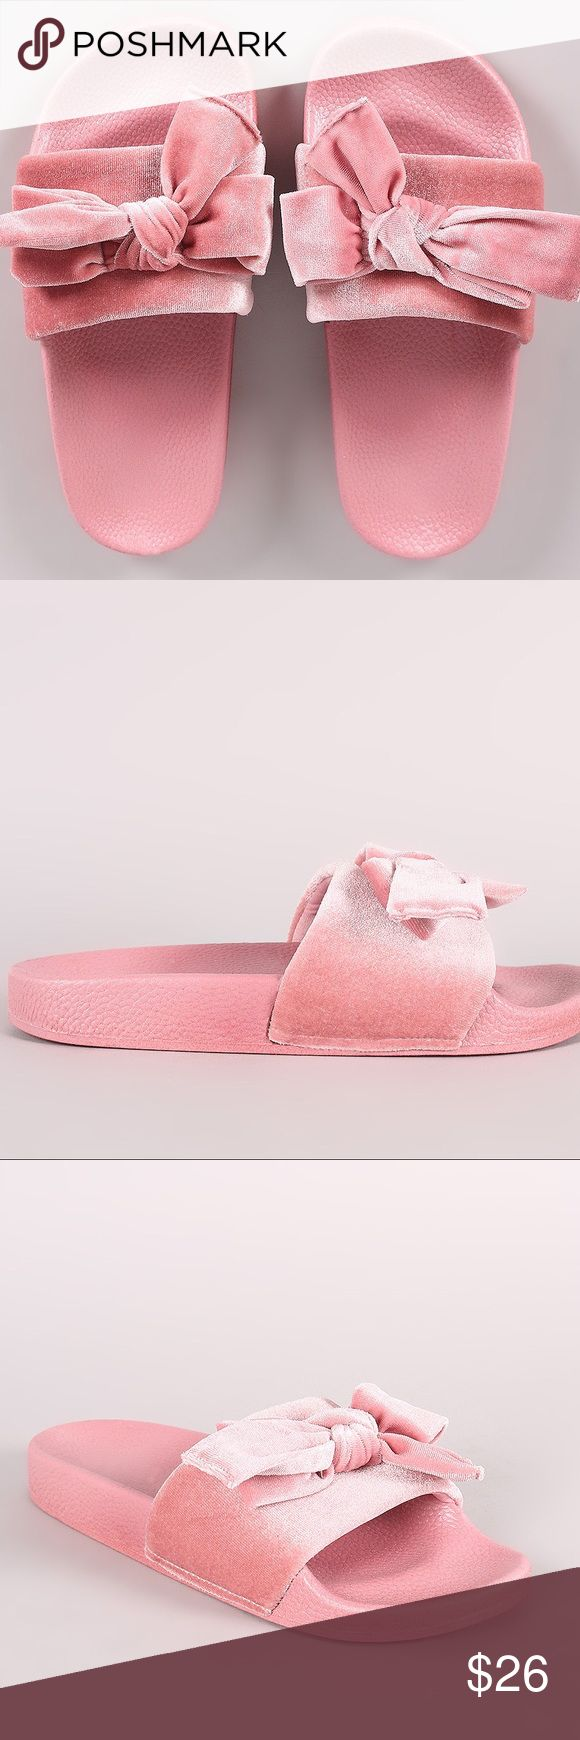 Inspired Puma Fenty Bow Slides by Rhianna Cute bow slides inspired by Puma Fenty Bow Slides. This sandal features a soft velvet band with a knotted bow accent and a comfy molded footbed in the color pink.                                                                                          Picture is of the actual item. Sold on and by LikeTheMinimal.com.    Sizes 5.5 through 10 available Rihanna Shoes Sandals